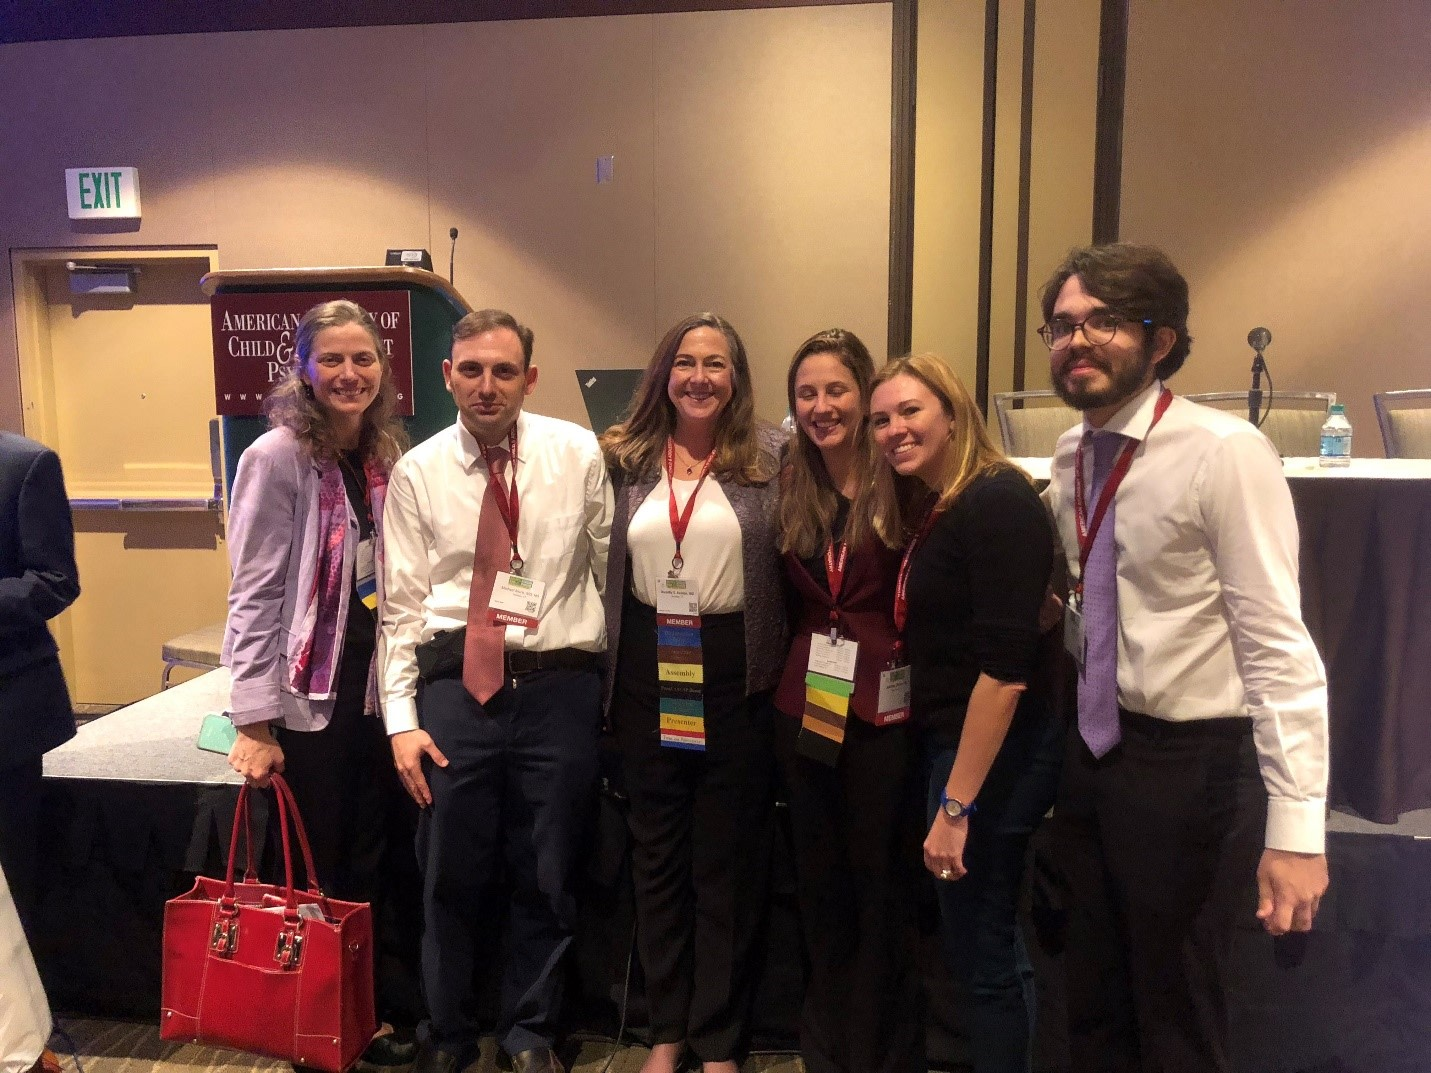 Yale CSC at 2018 AACAP